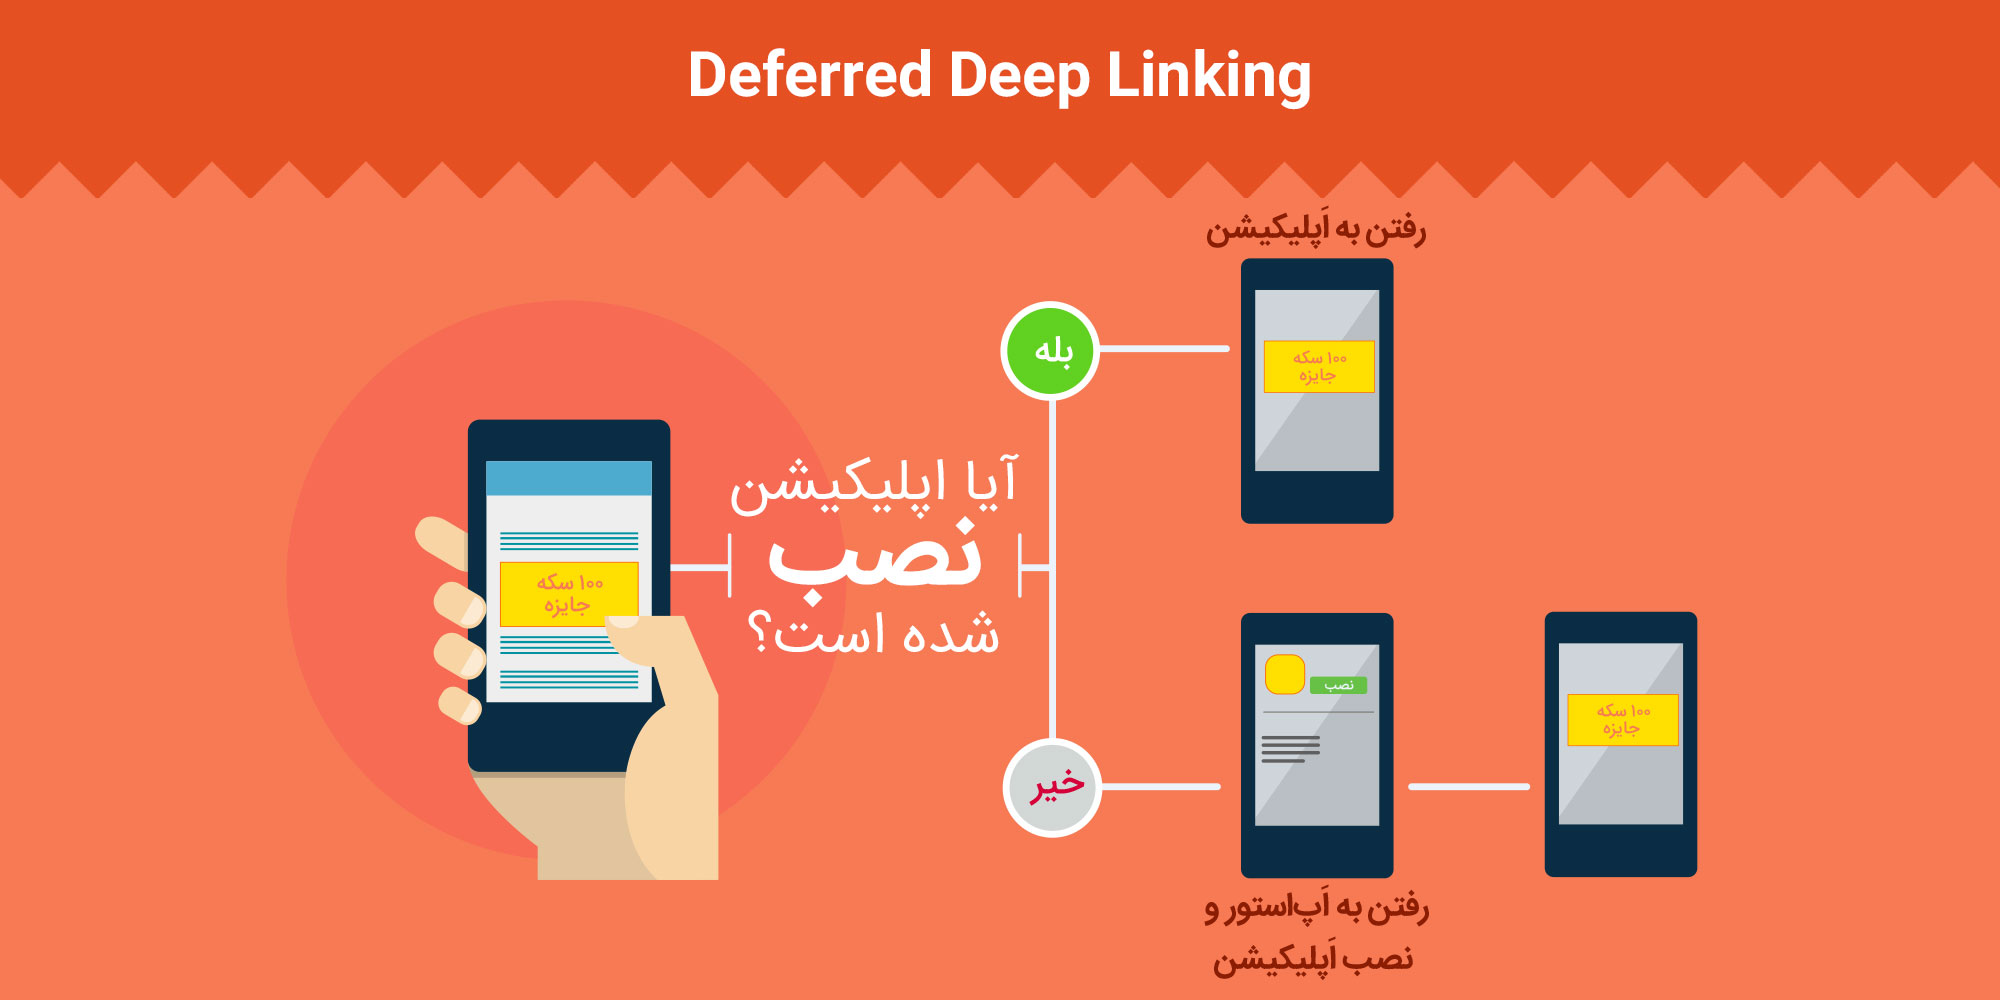 مدل differed deep linking